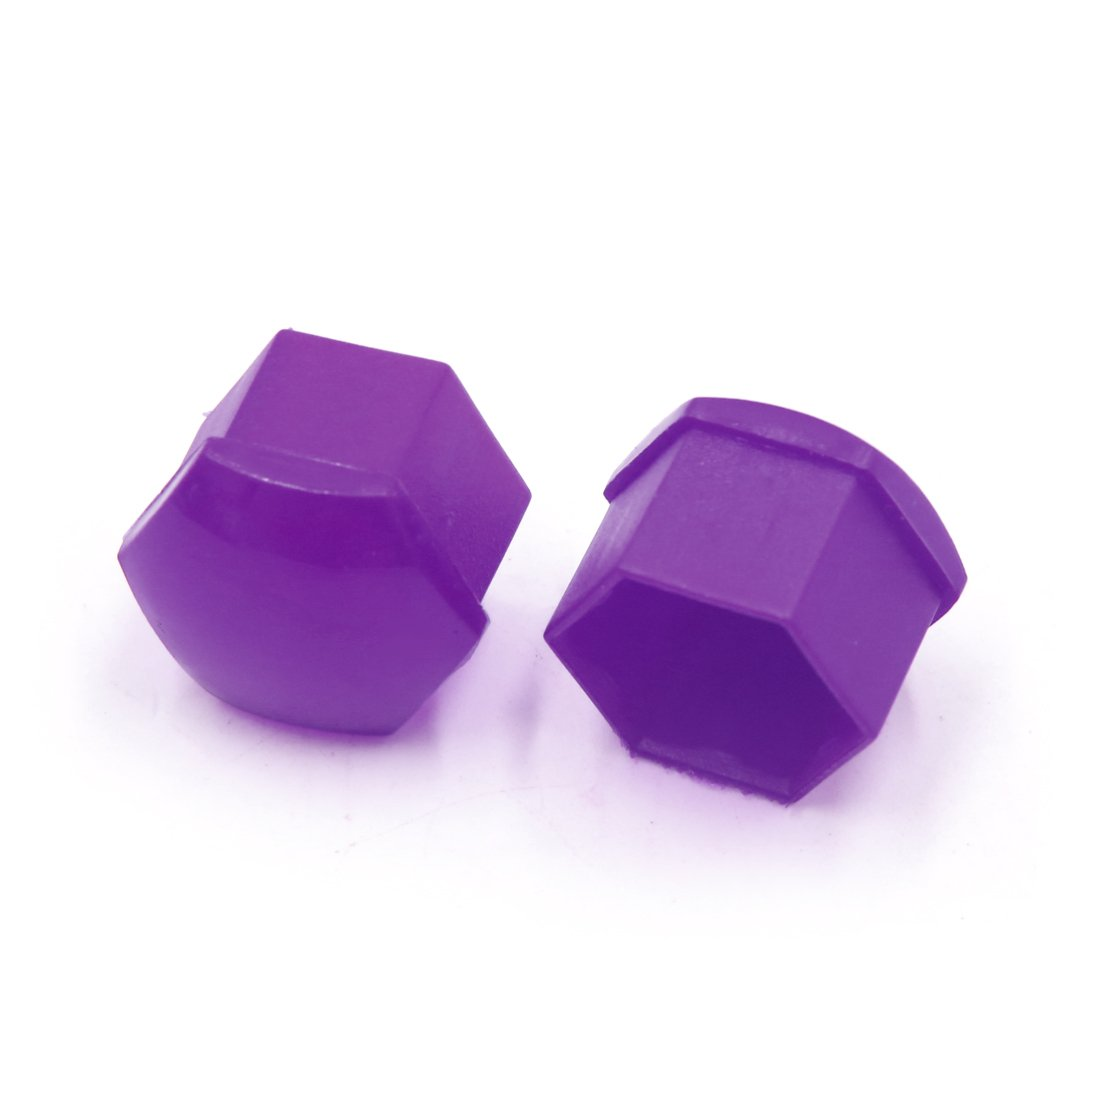 Sourcingmap 20pcs 17mm Purple Plastic Wheel Lug Nut Bolt Cover Cap with Removal Tool for Car